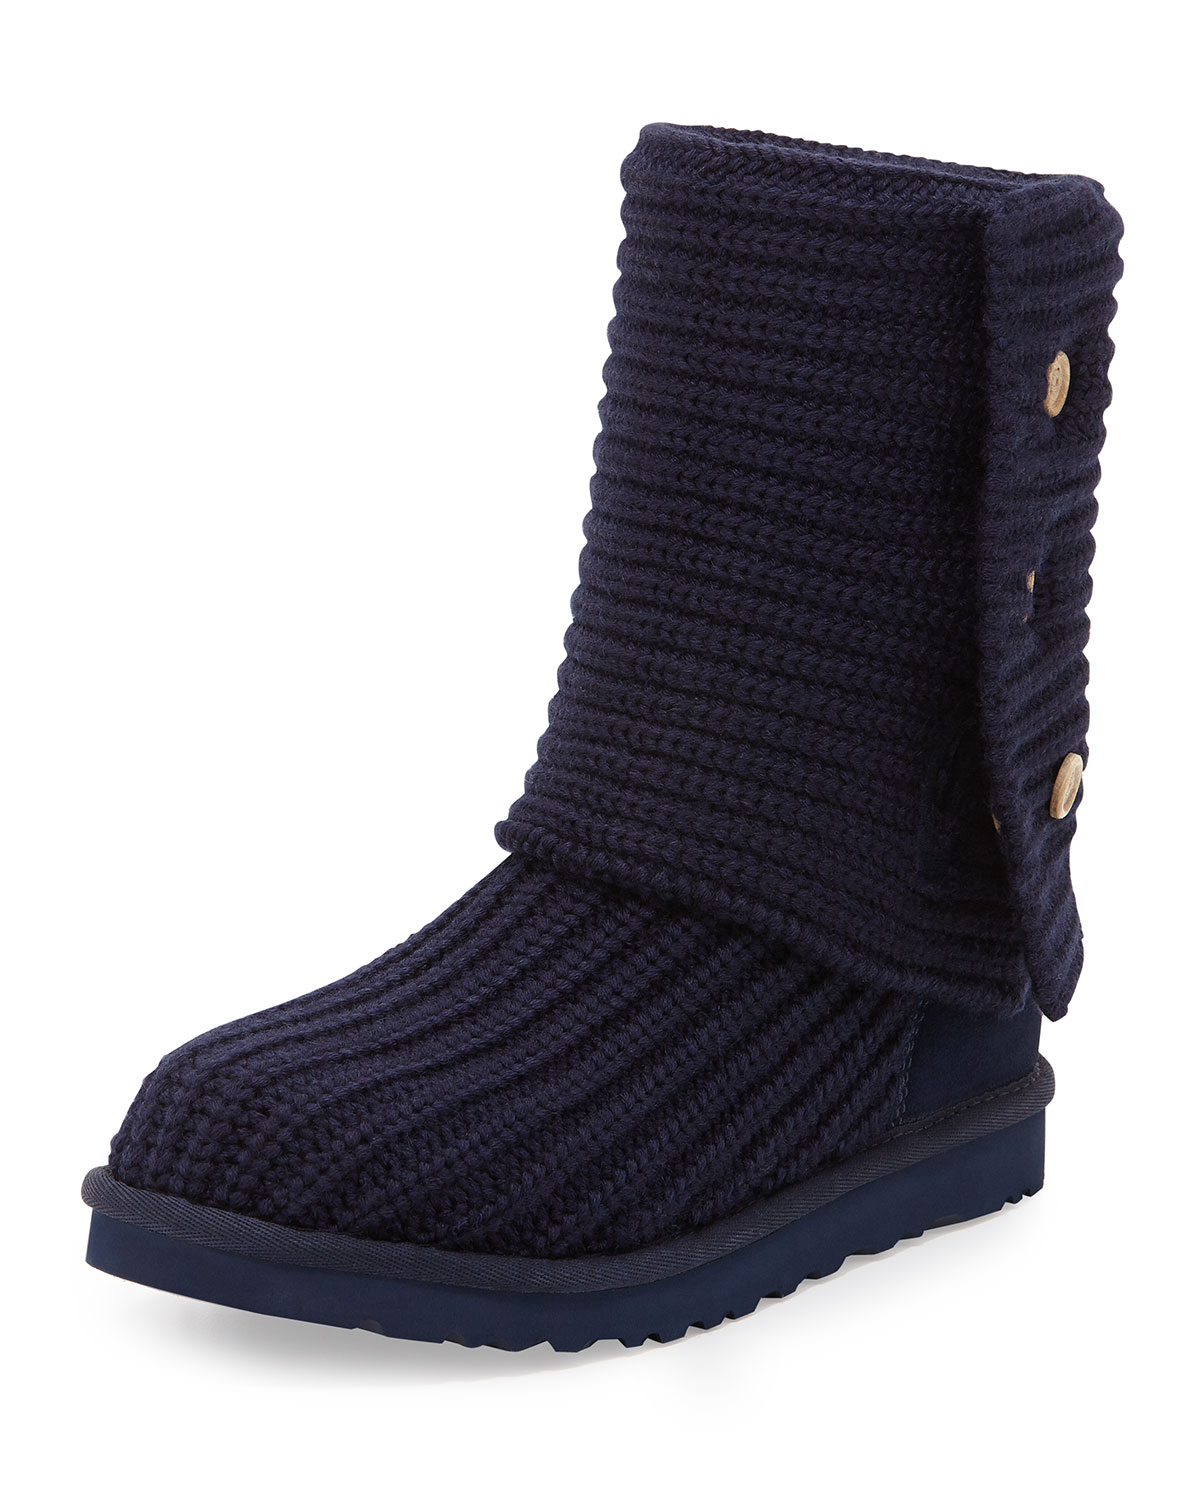 Ugg Classic Cardy Navy